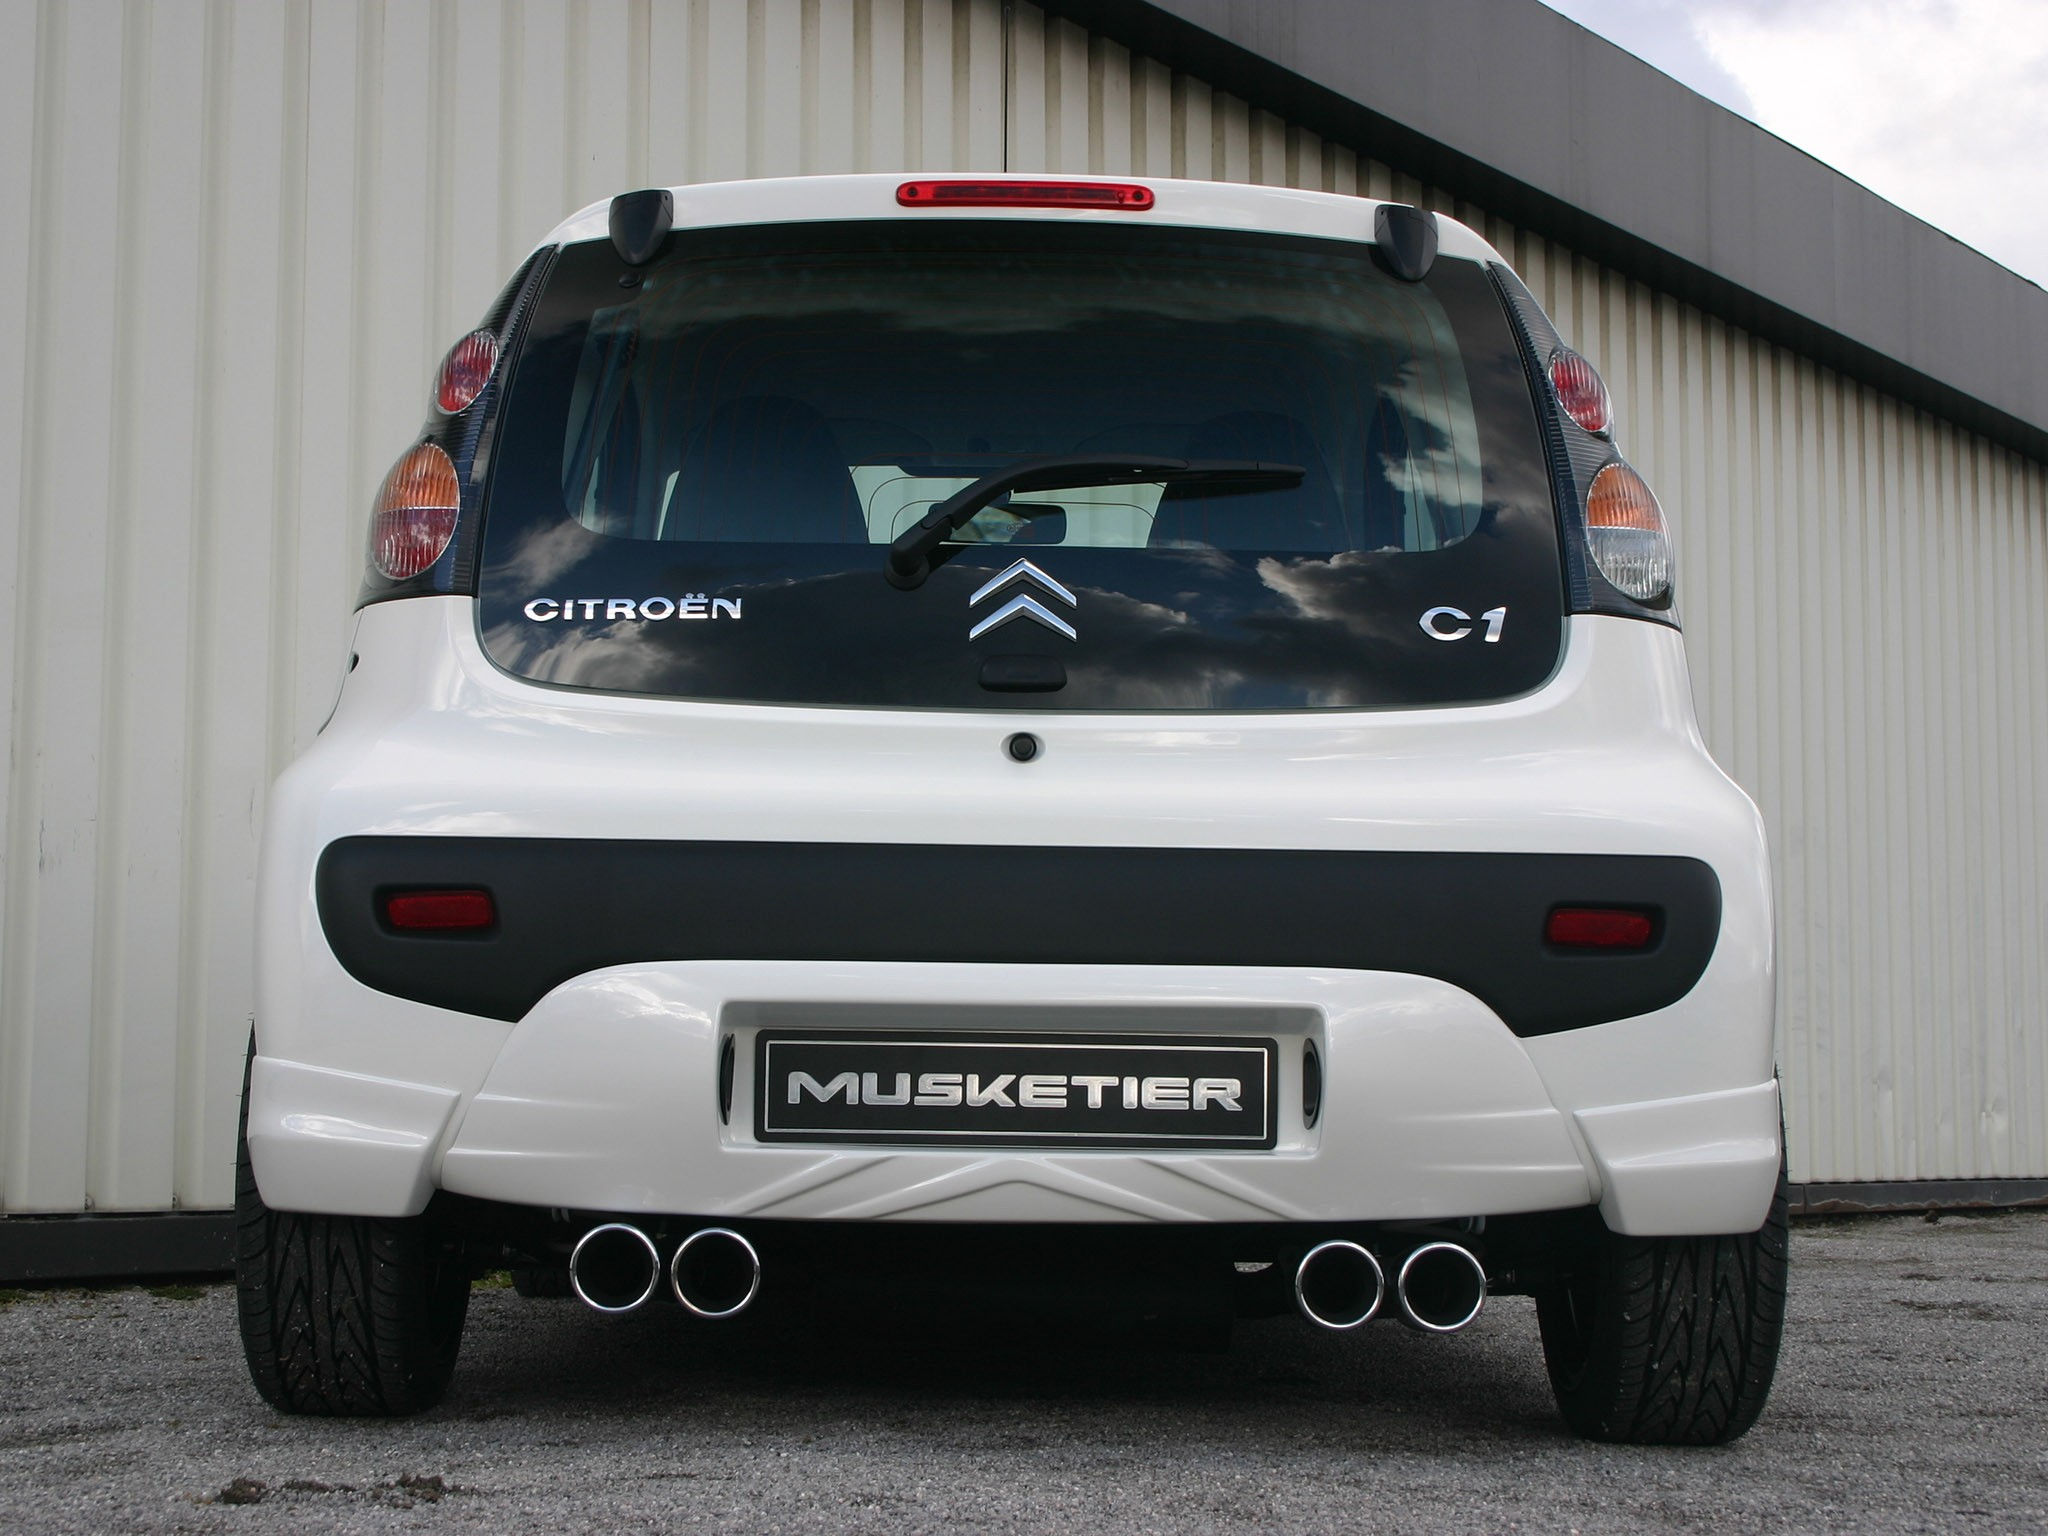 2009 Musketier Citroen C1